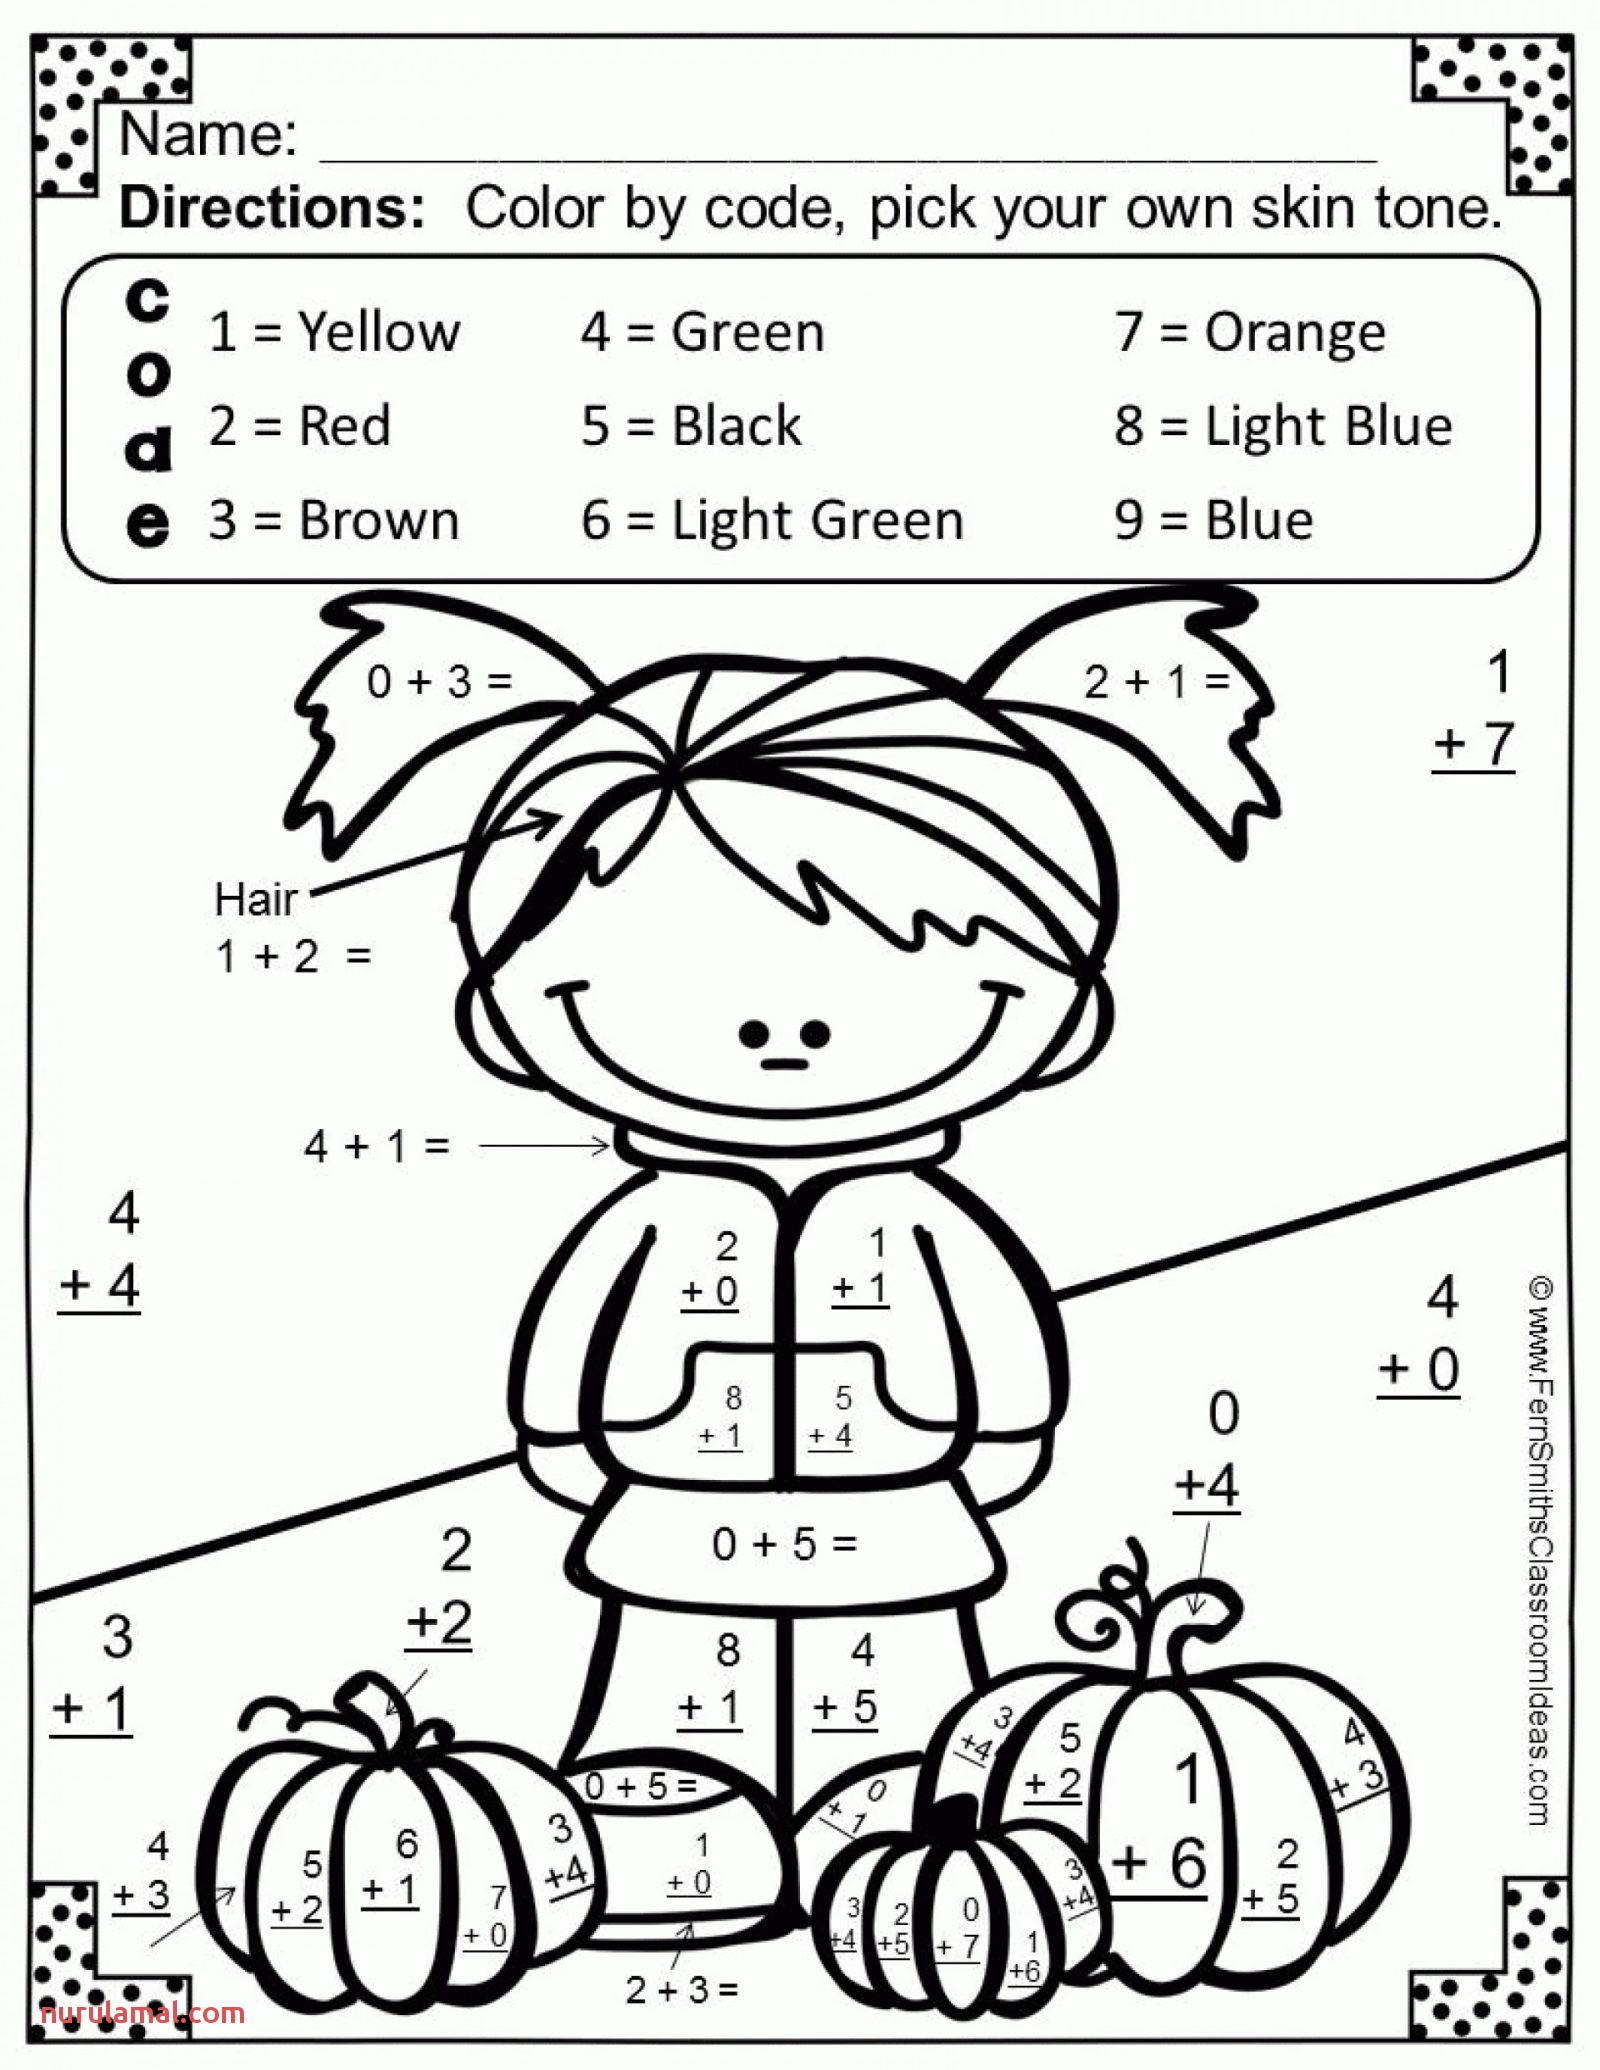 grade math addition and subtraction worksheets bahia ne kata wan for kindergarten activity book printable free first tuition private 5th practice sheets kids worksheet final exam multiple